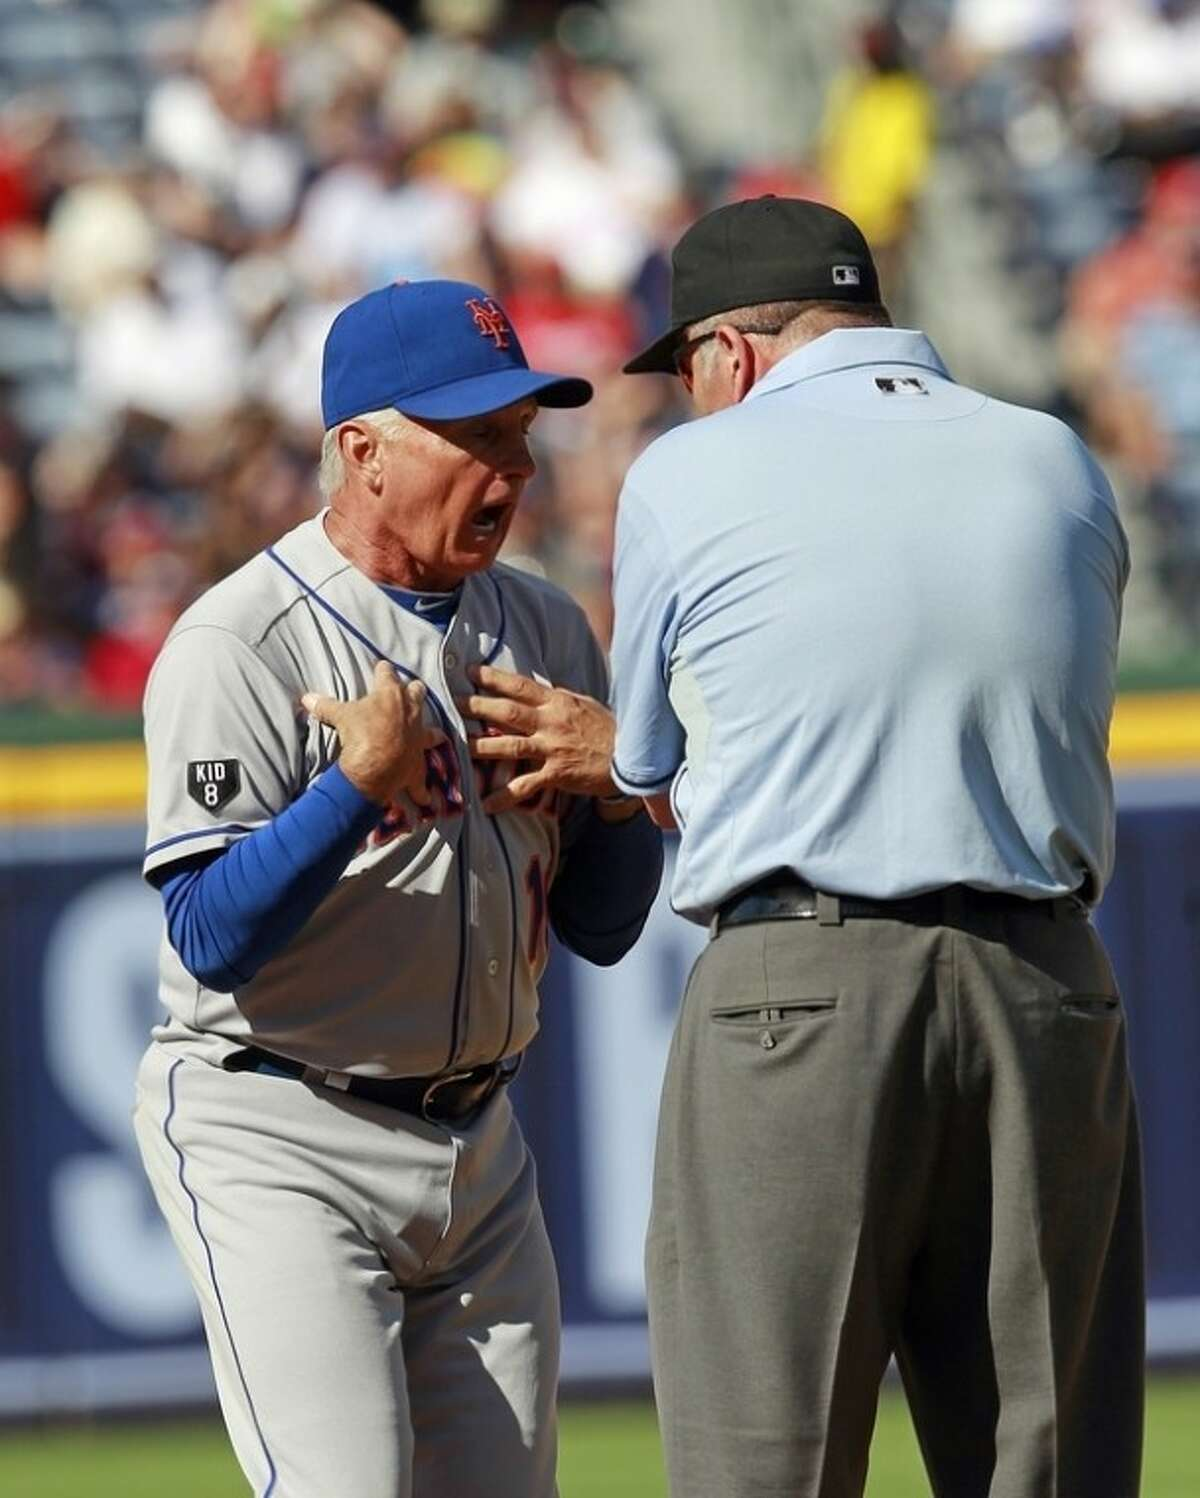 New York Mets manager Terry Collins (10) argues a call on a fly ball with umpire Dale Scott before being ejected from the game in the fifth inning of a baseball game against the Atlanta Braves Saturday, July, 14, 2012 in Atlanta. (AP Photo/John bazemore)